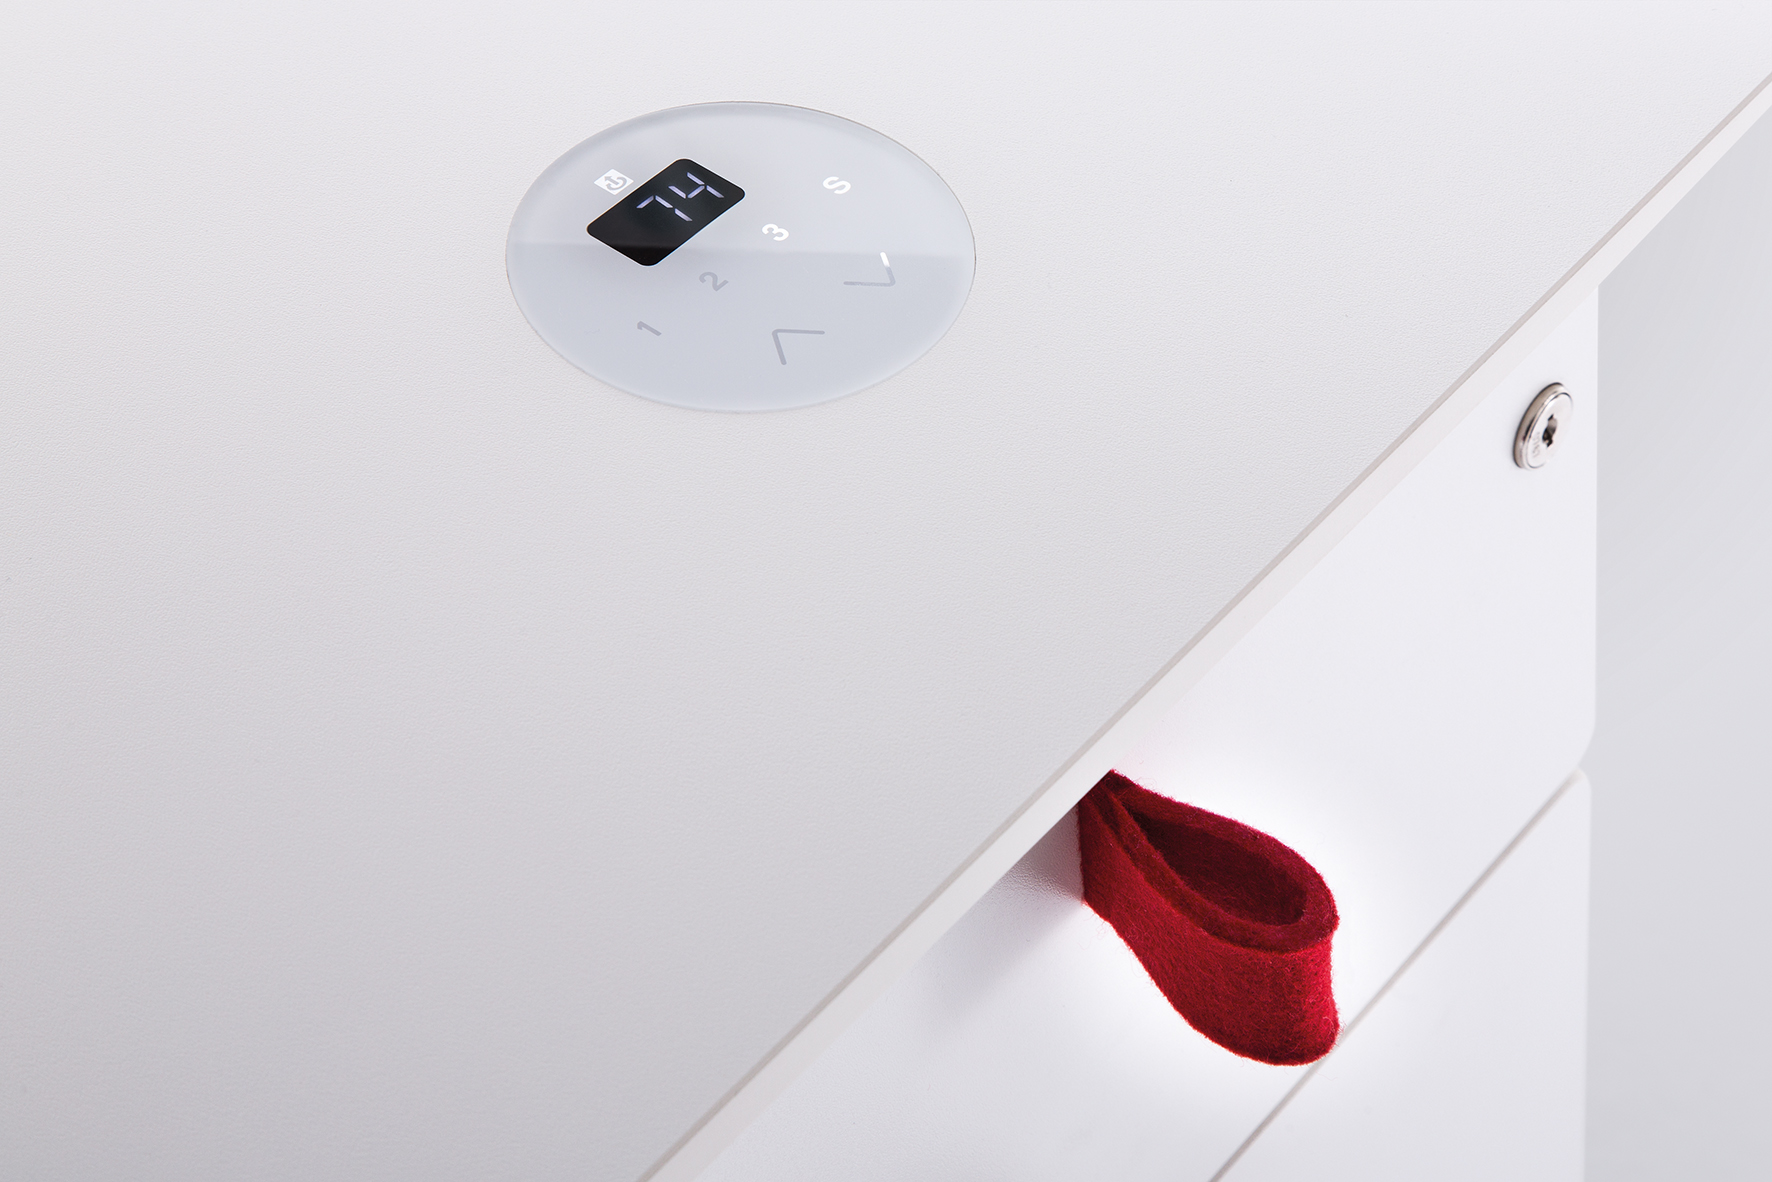 The control unit for height adjustment on Häfele's table base is integrated in the table top.